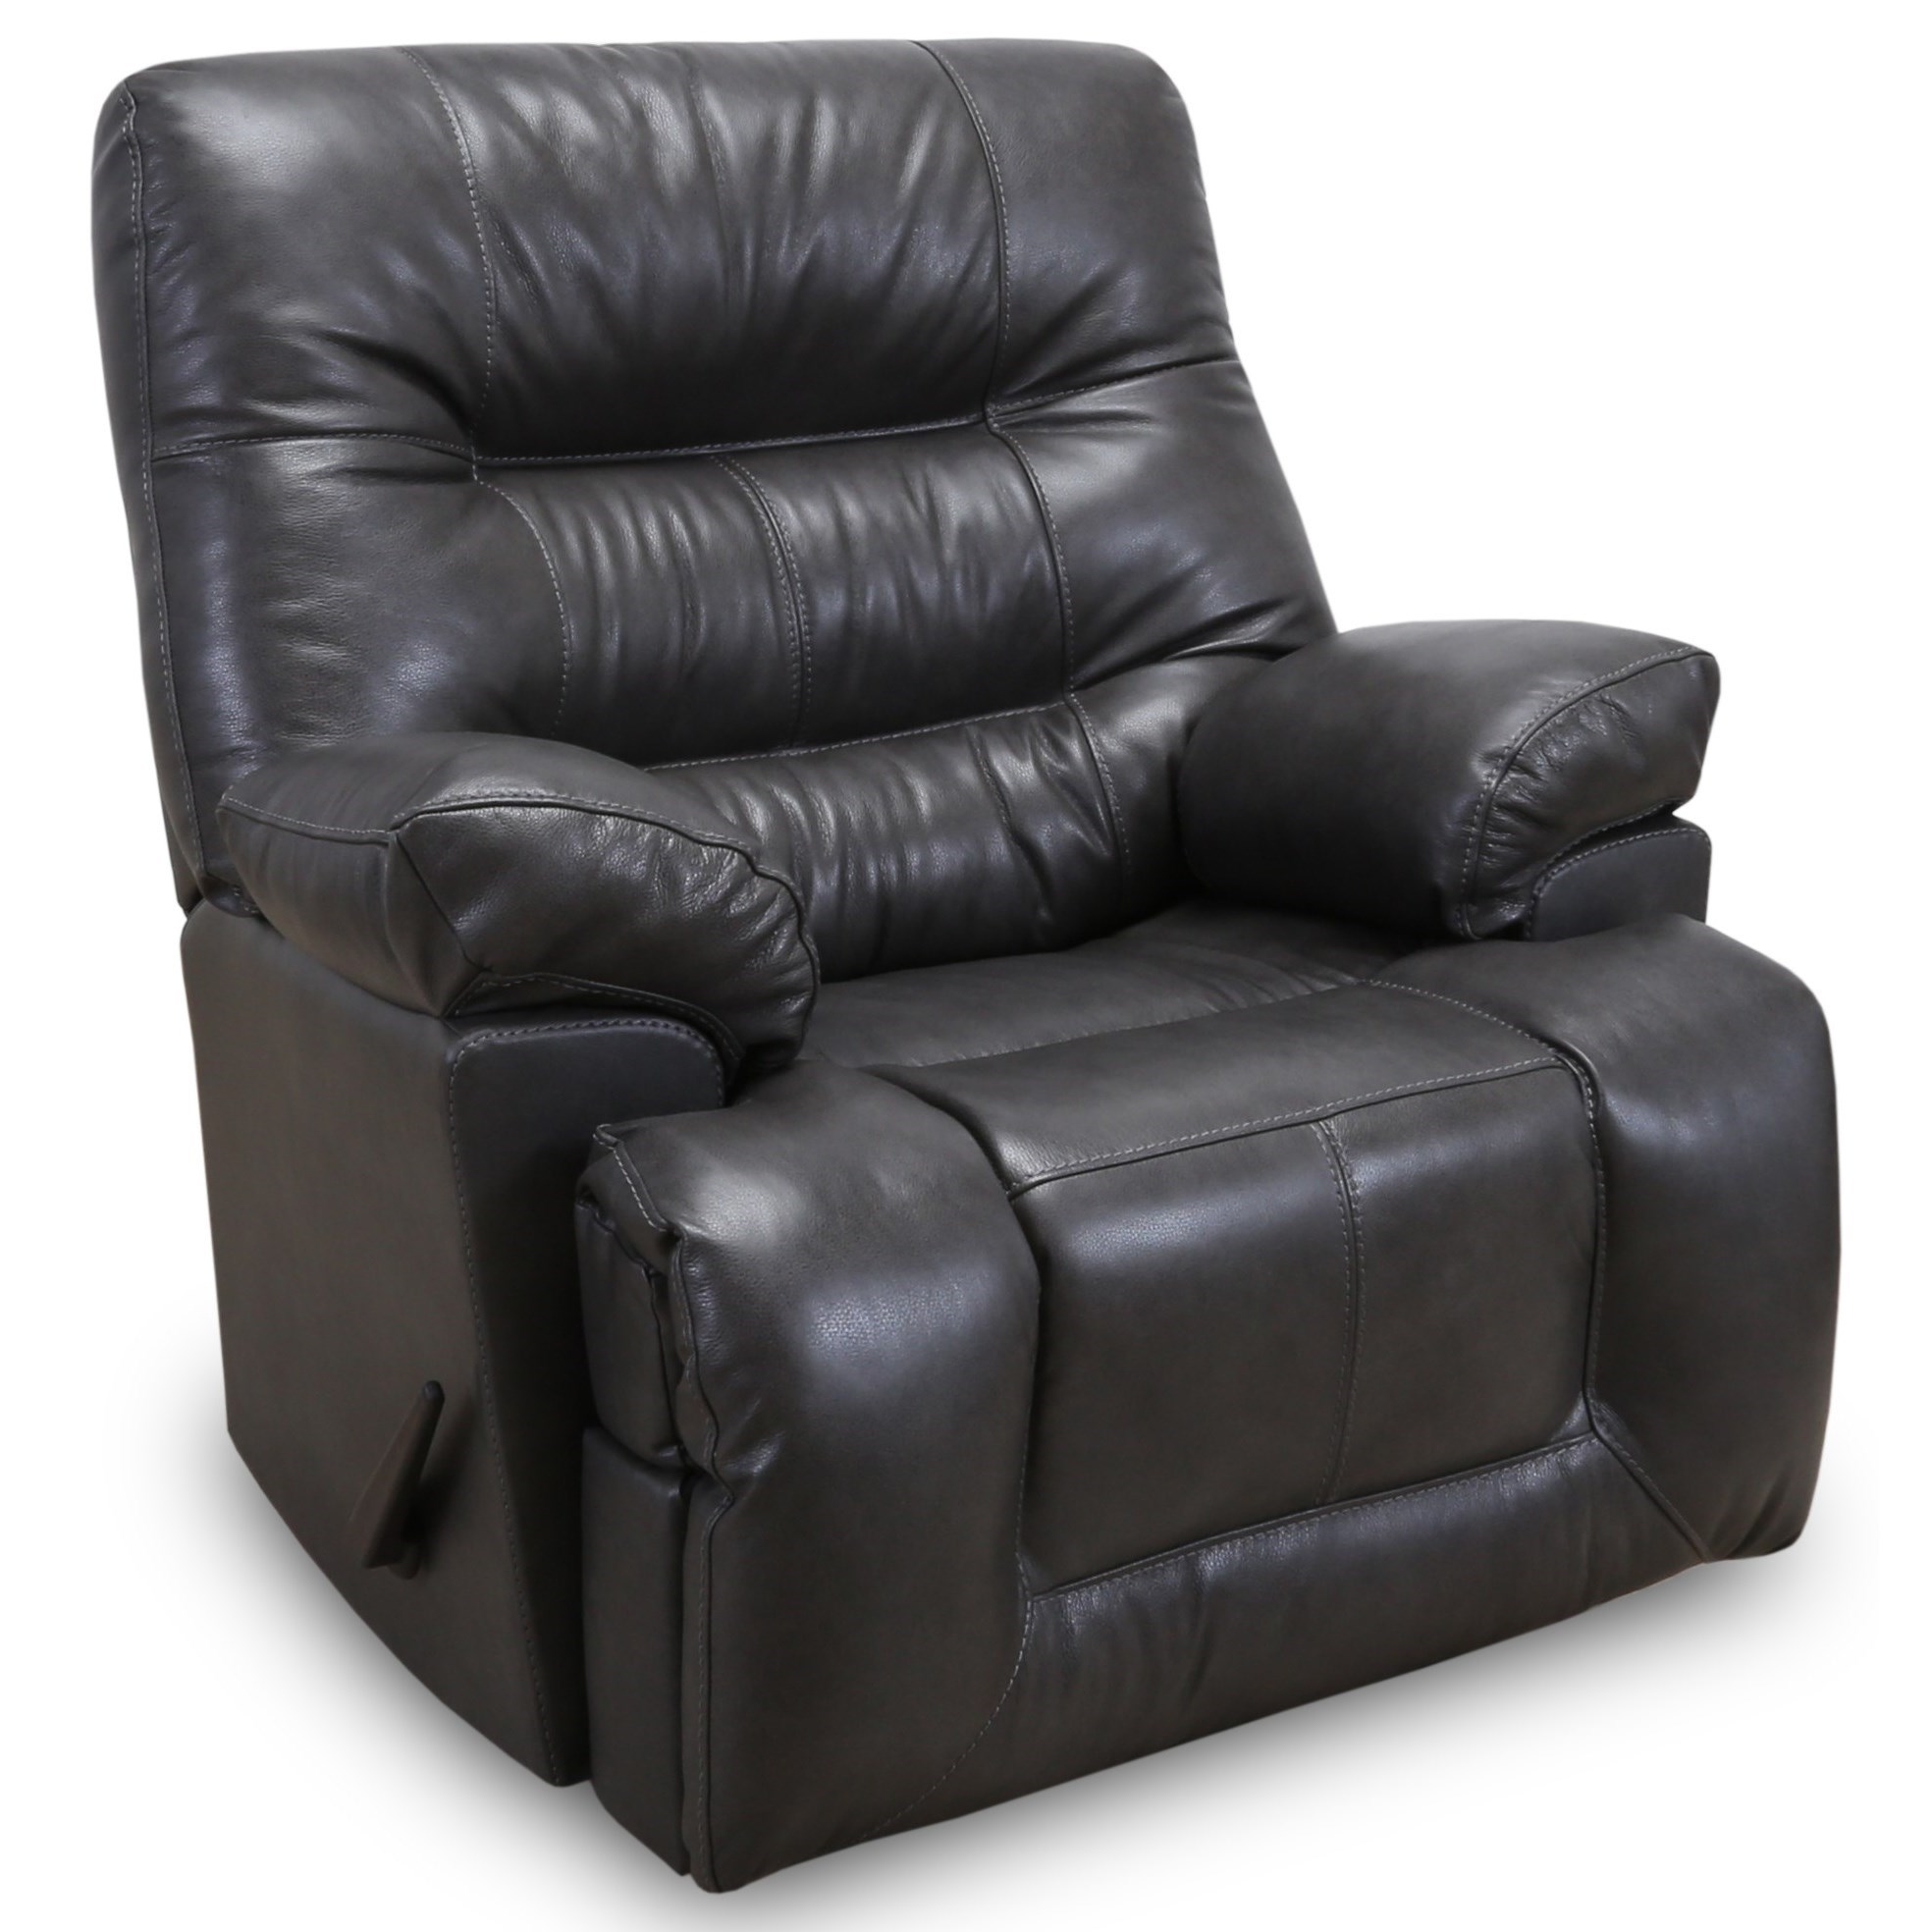 Franklin Recliners Boss Swivel Rocker Recliner by Franklin at Rooms for Less